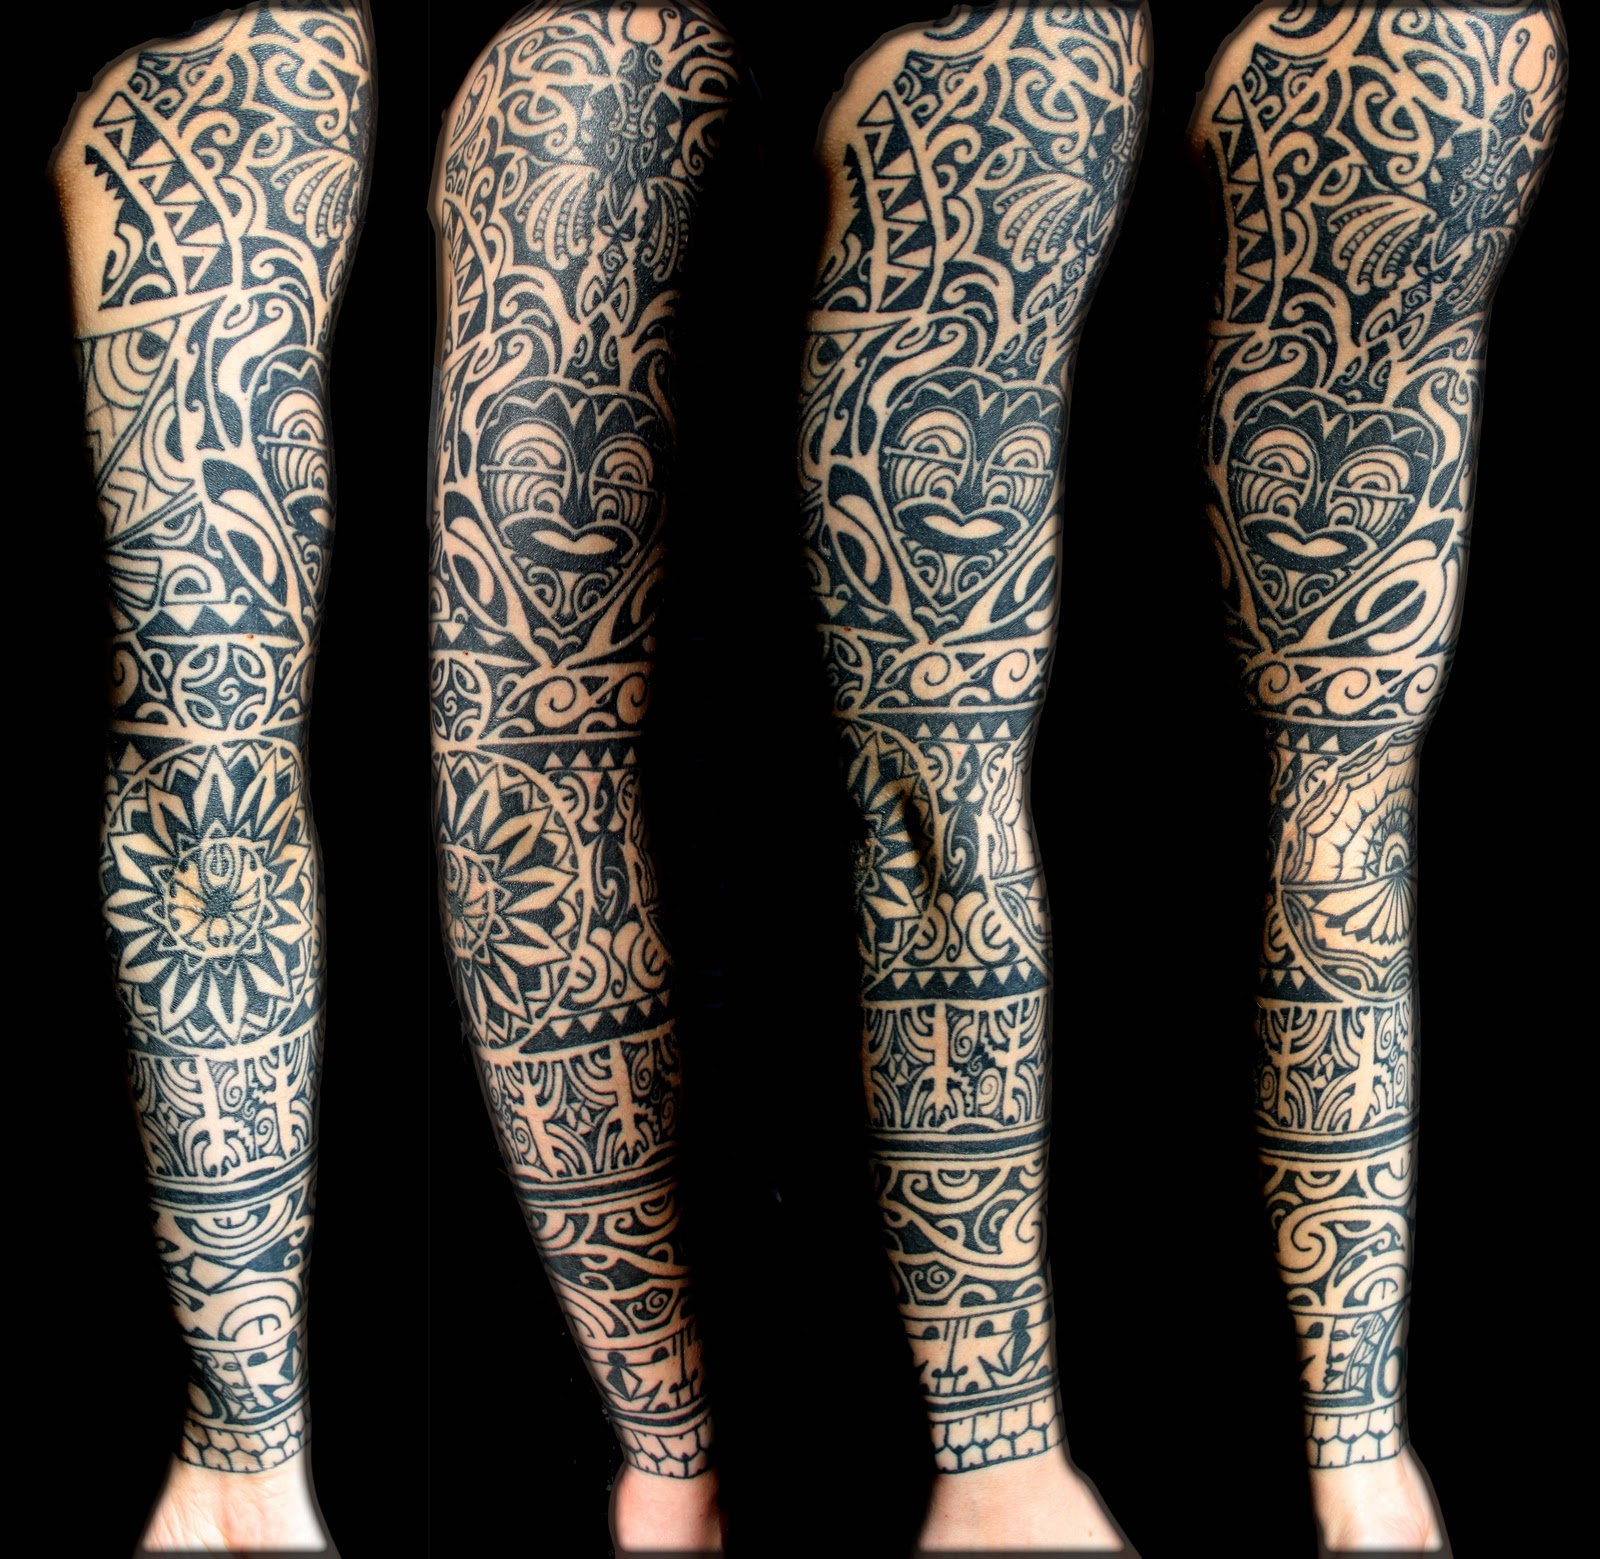 Full arm photo of my Polynesian tattoo